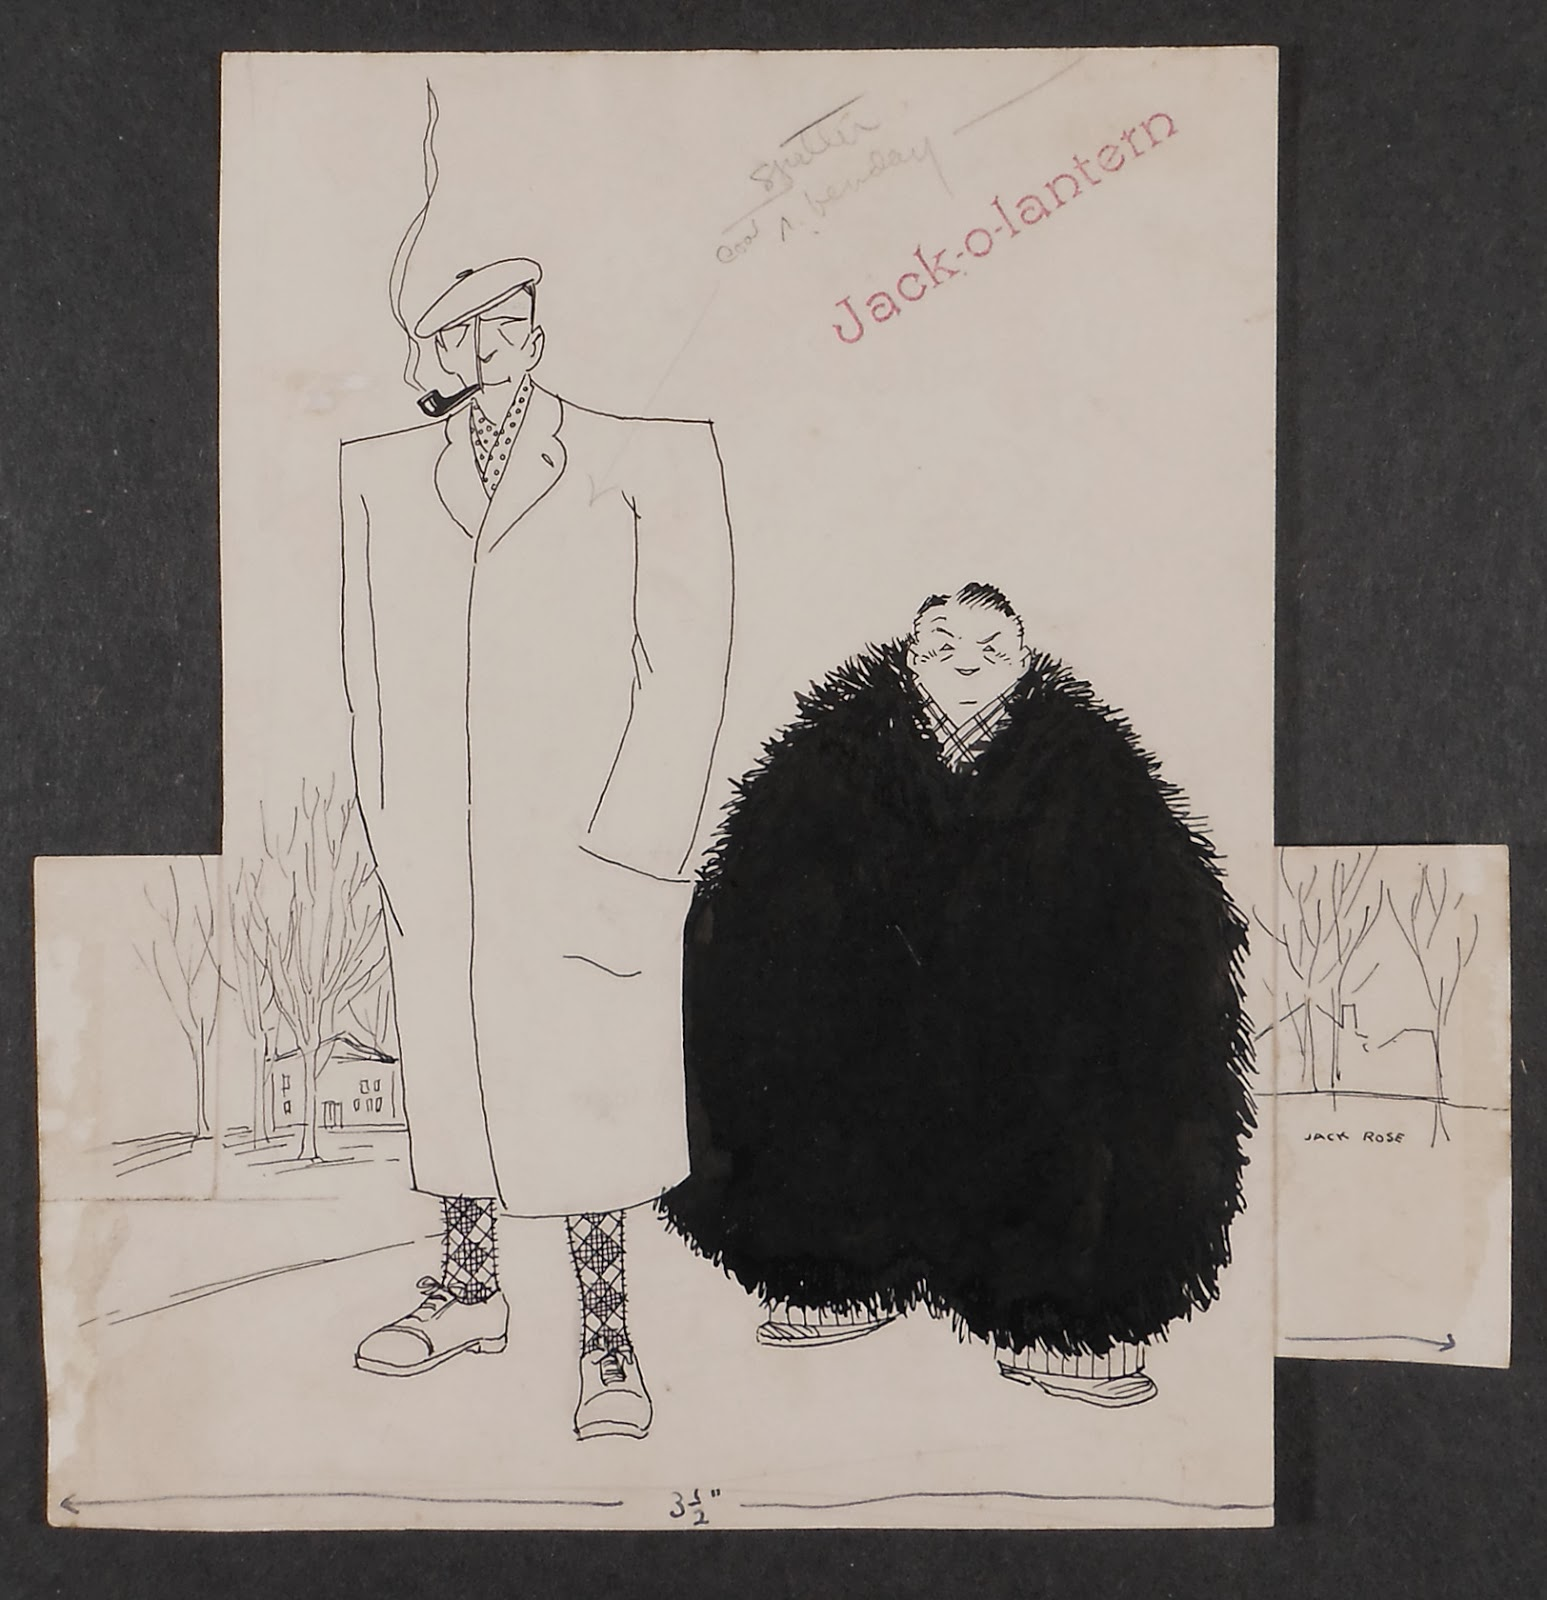 A cartoon of a tall man in a coat and a short man in a dark fur.